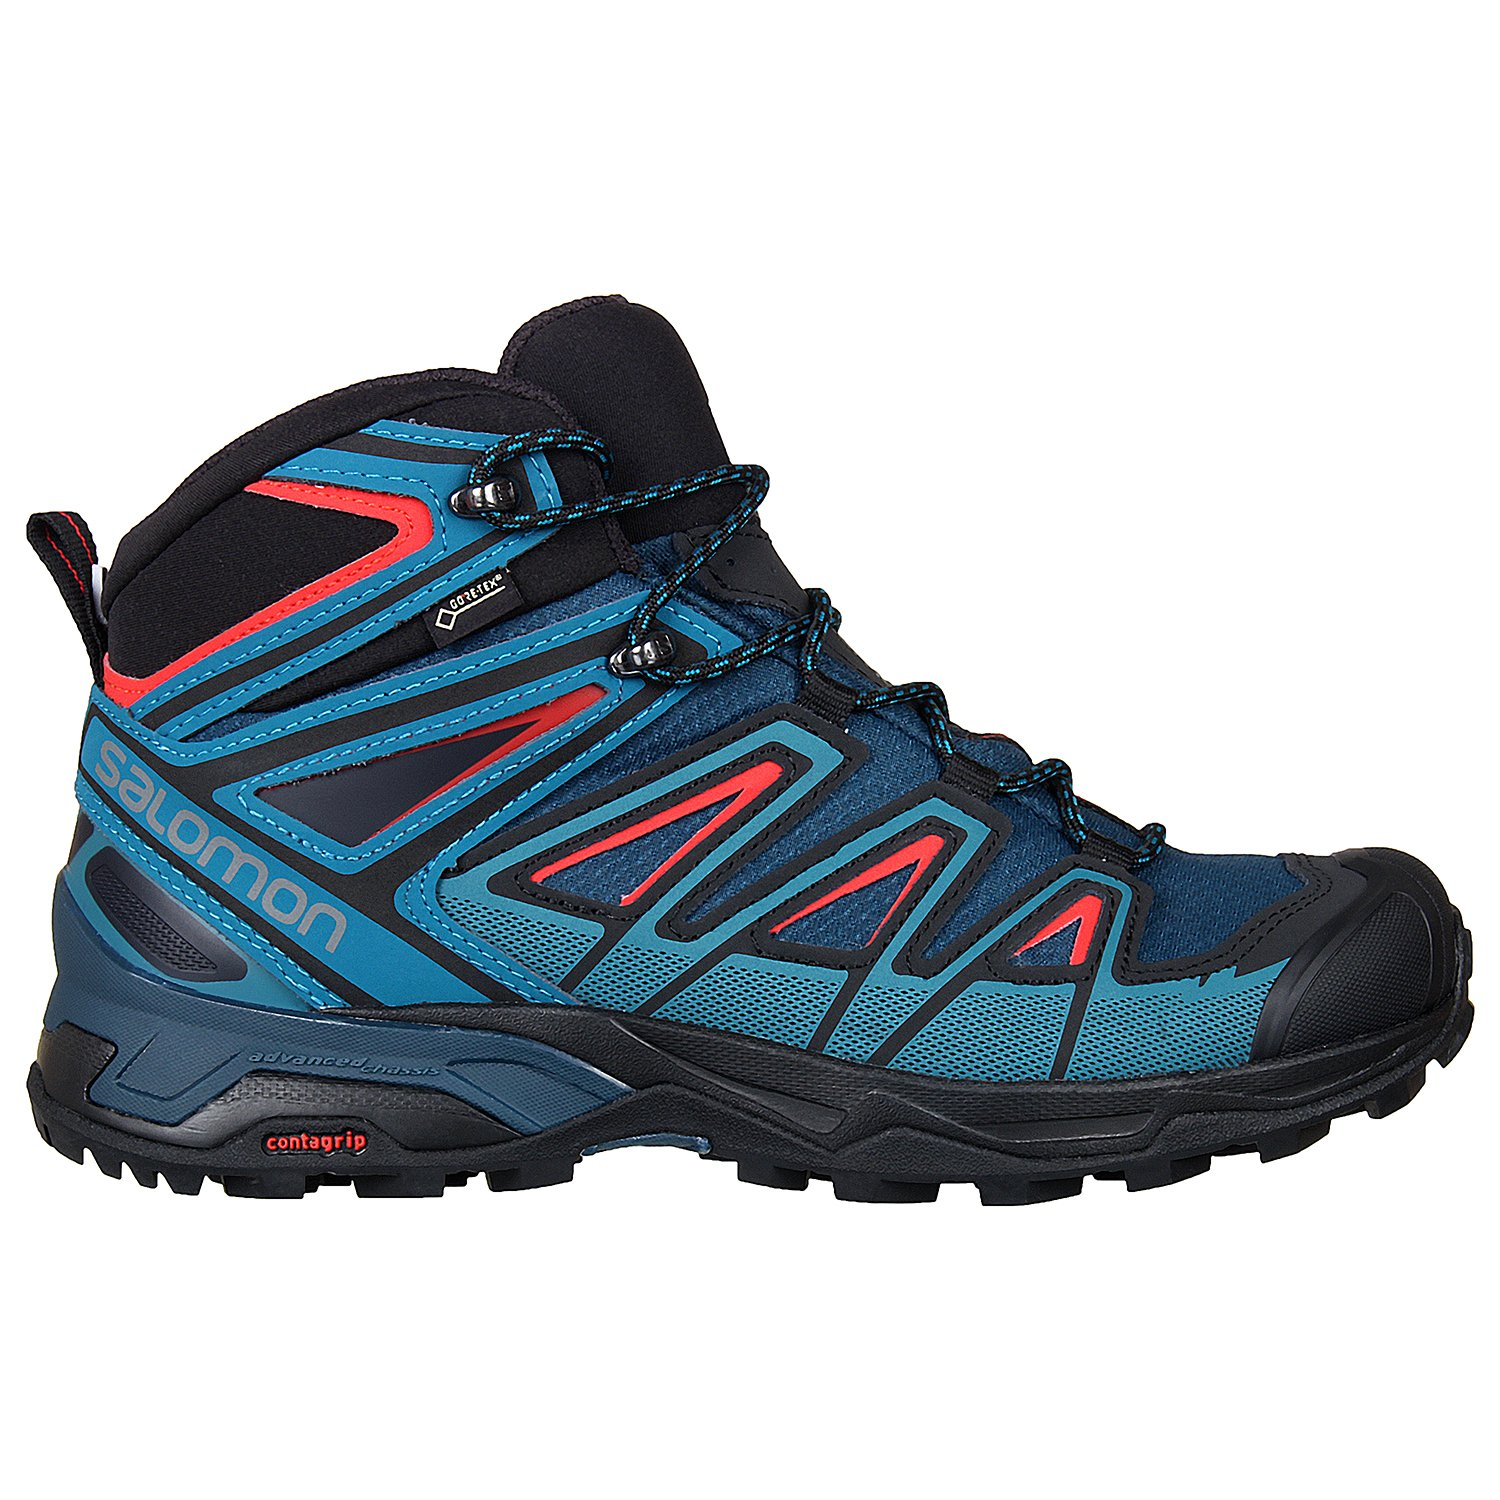 96834077e3c Buy Salomon Men s X Ultra 3 Mid GTX Hiking Shoes Online at Low Prices in  India - Amazon.in